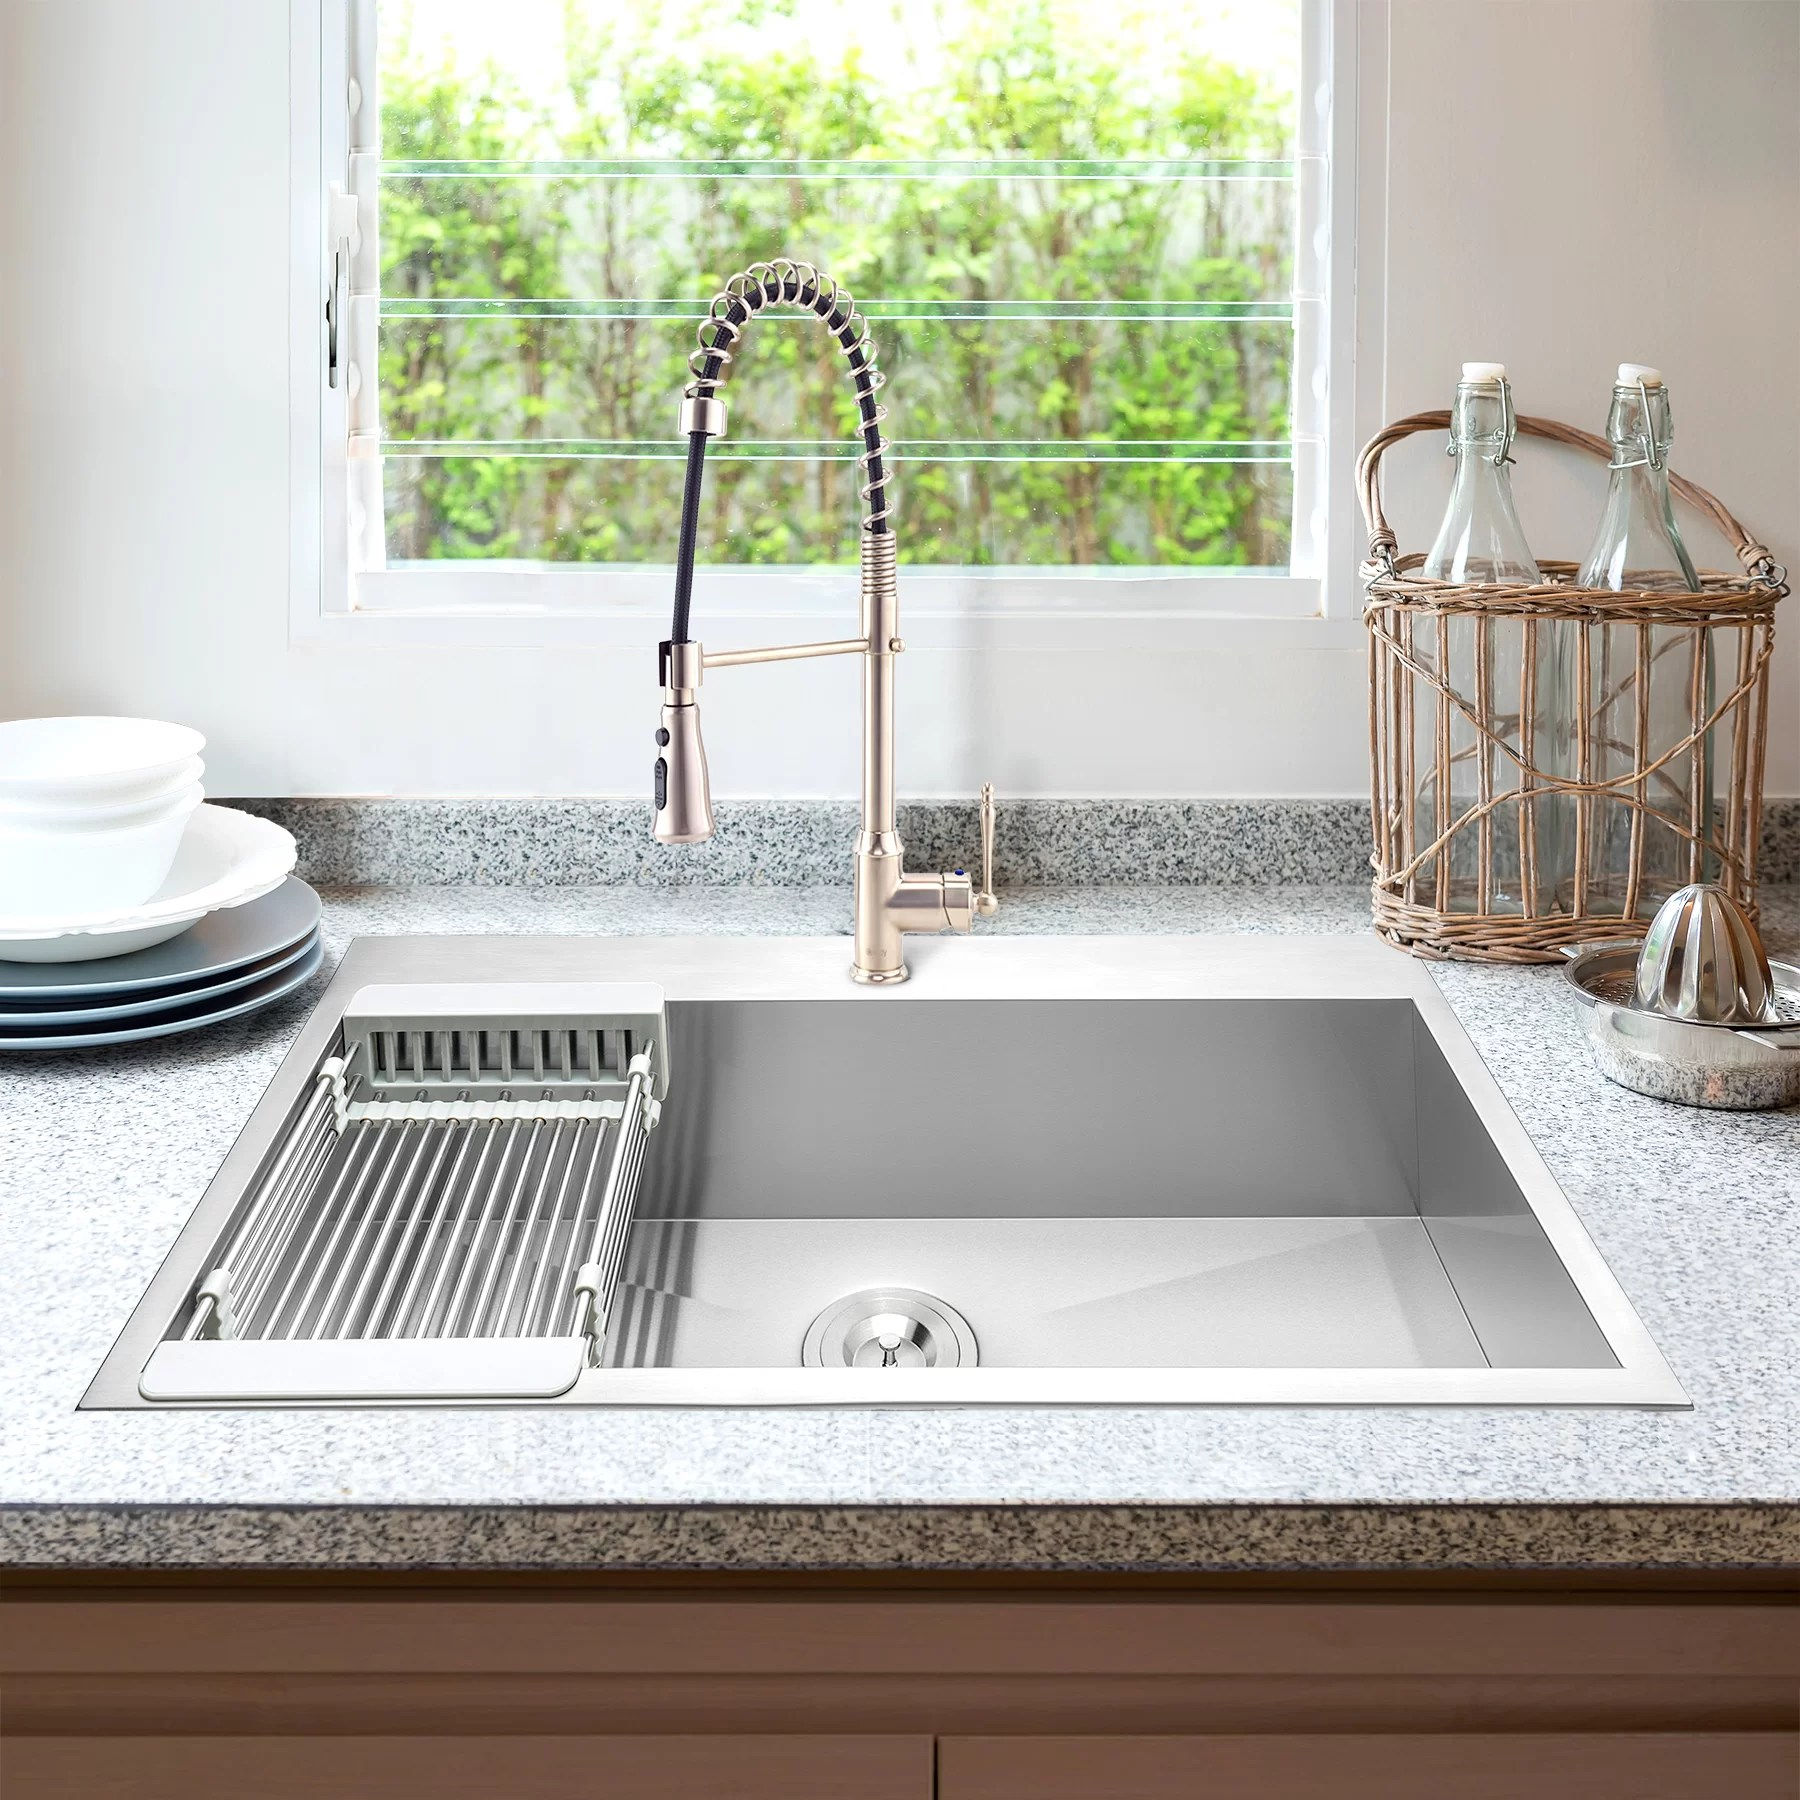 Akdy 30 L X 18 W Drop In Kitchen Sink With Faucet And Basket Strainer Wayfair